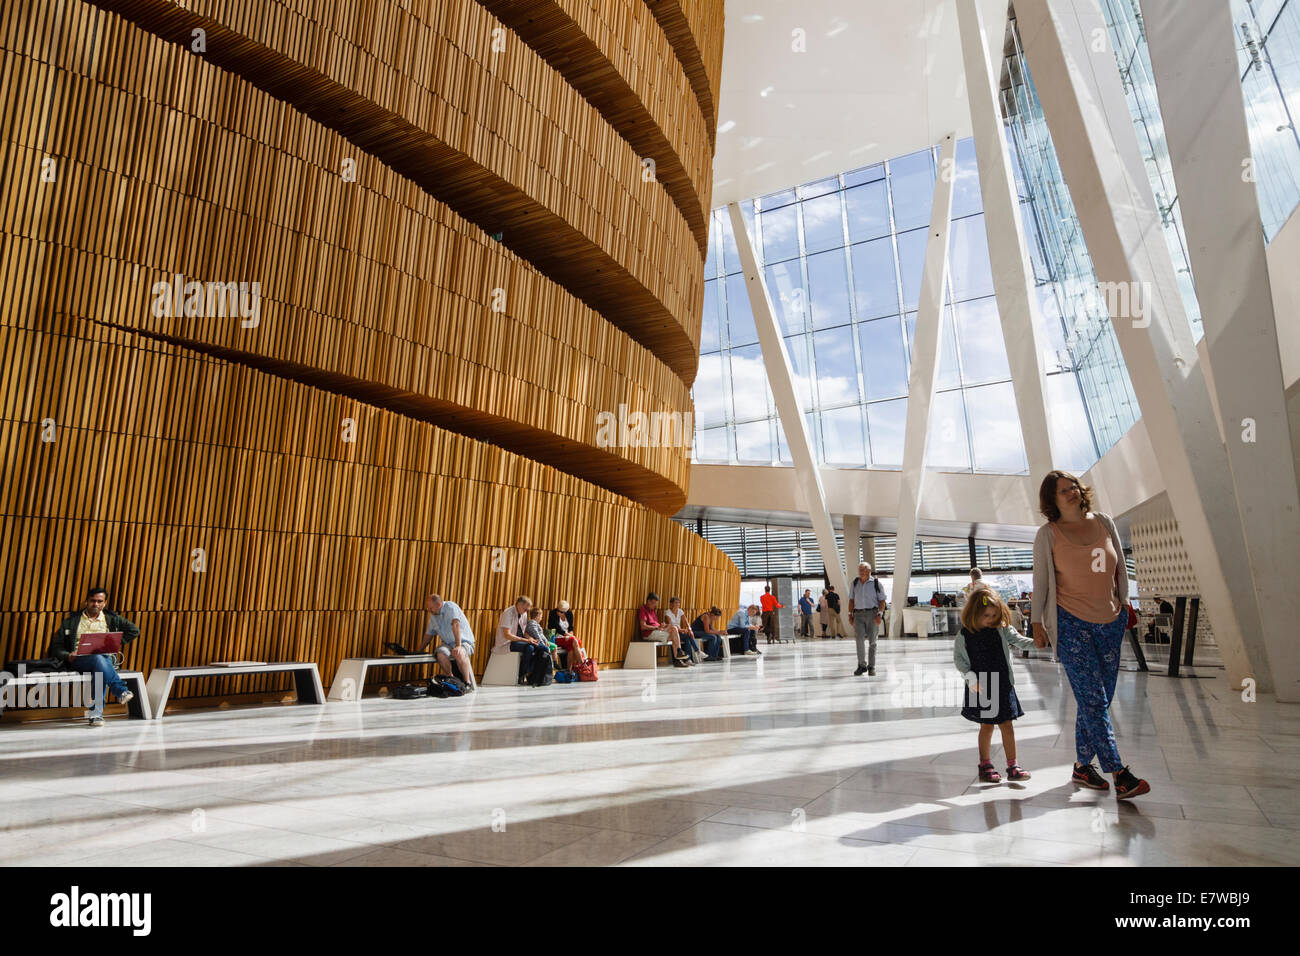 Wave Wall at the foyer of the Opera Hall, Oslo, Norway Stock Photo